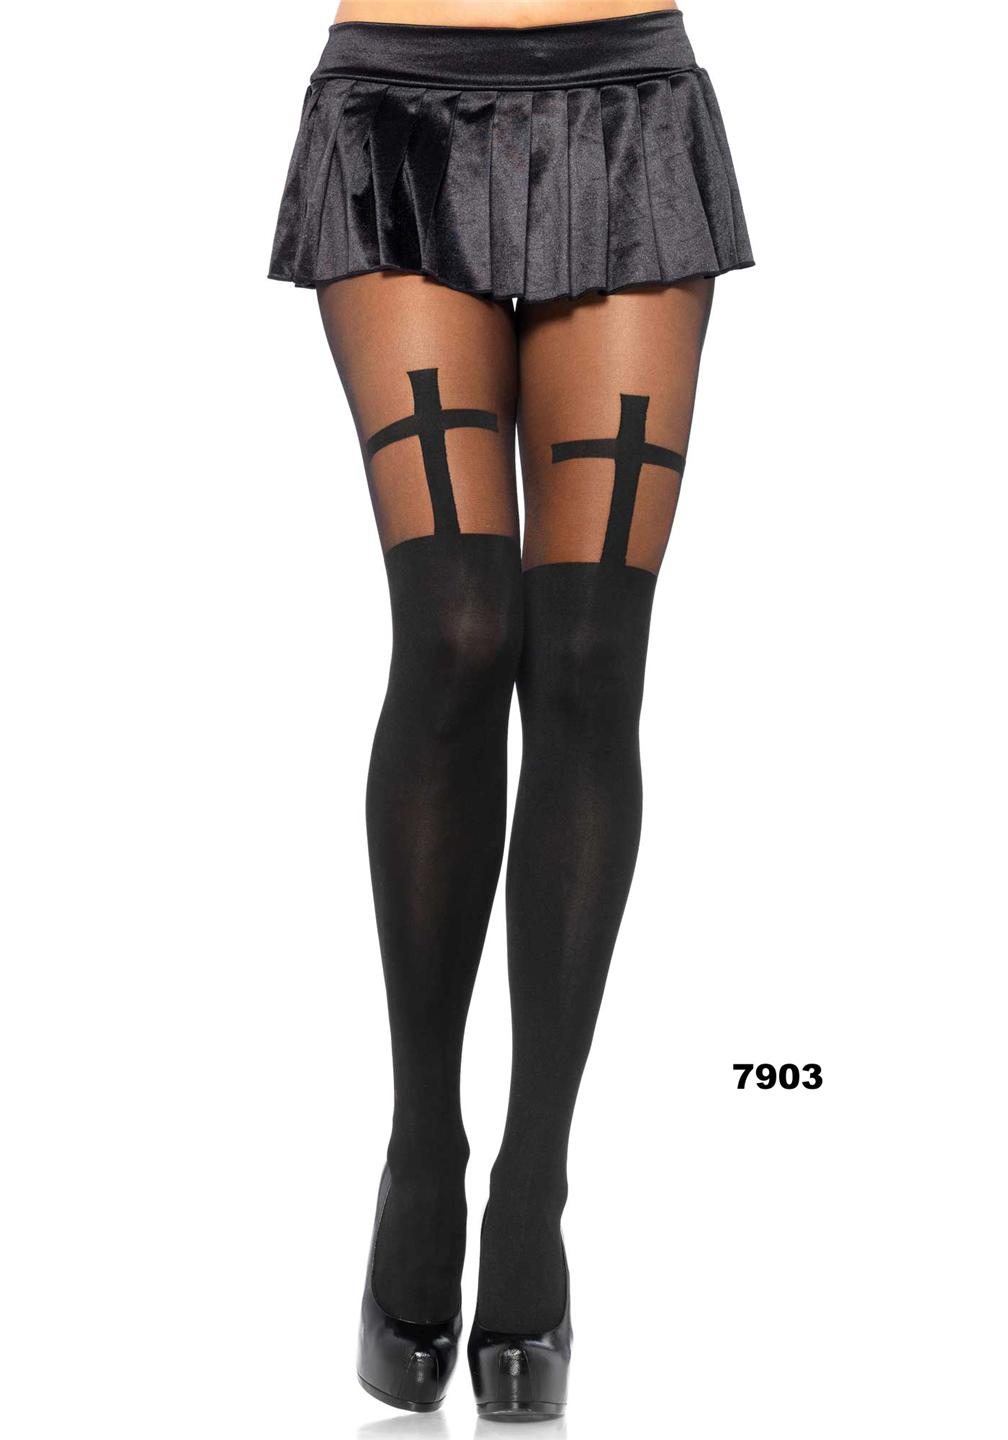 Pantyhose Deluxe 68